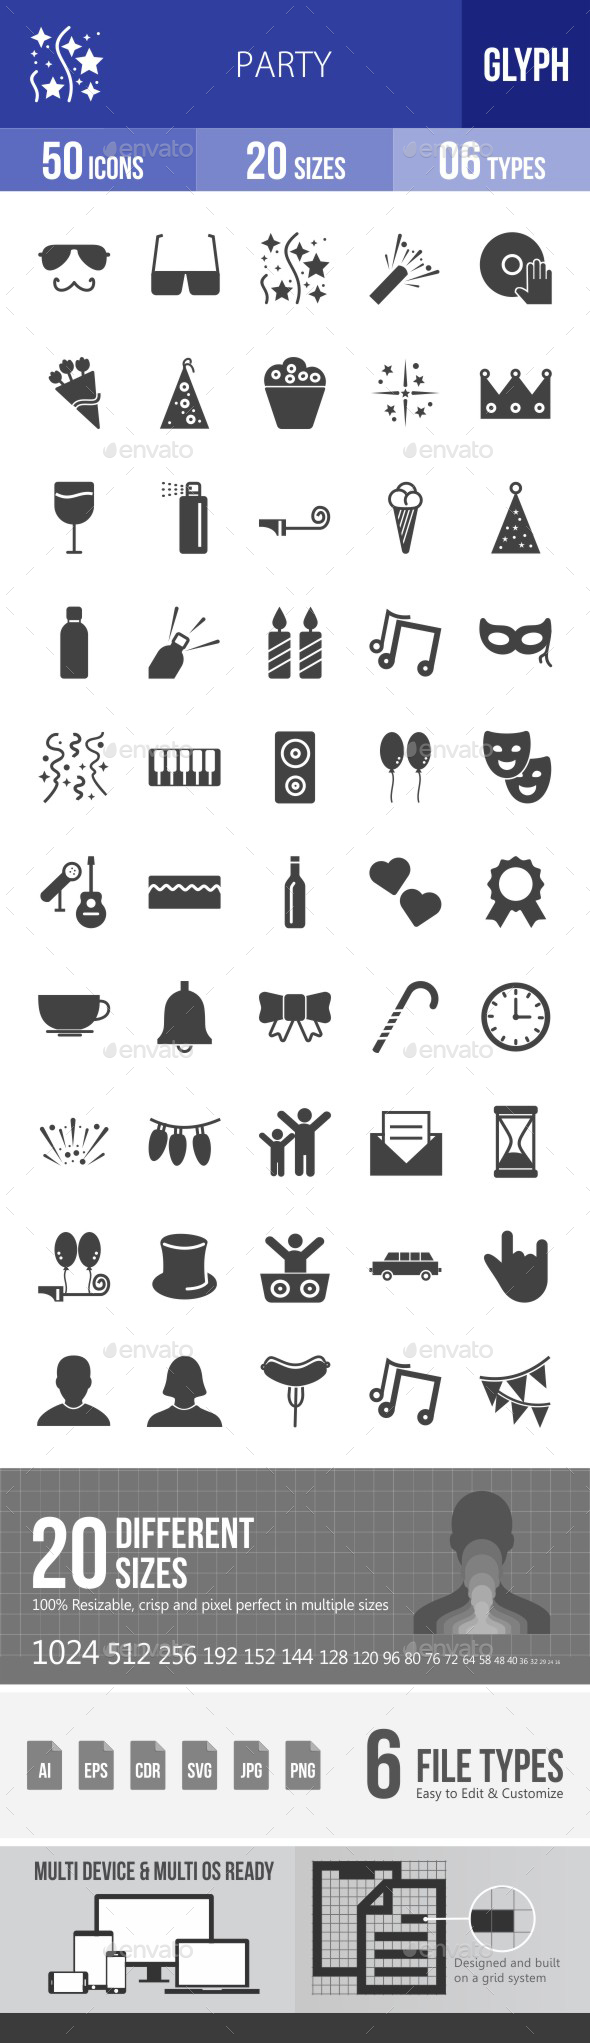 Party Glyph Icons - Icons